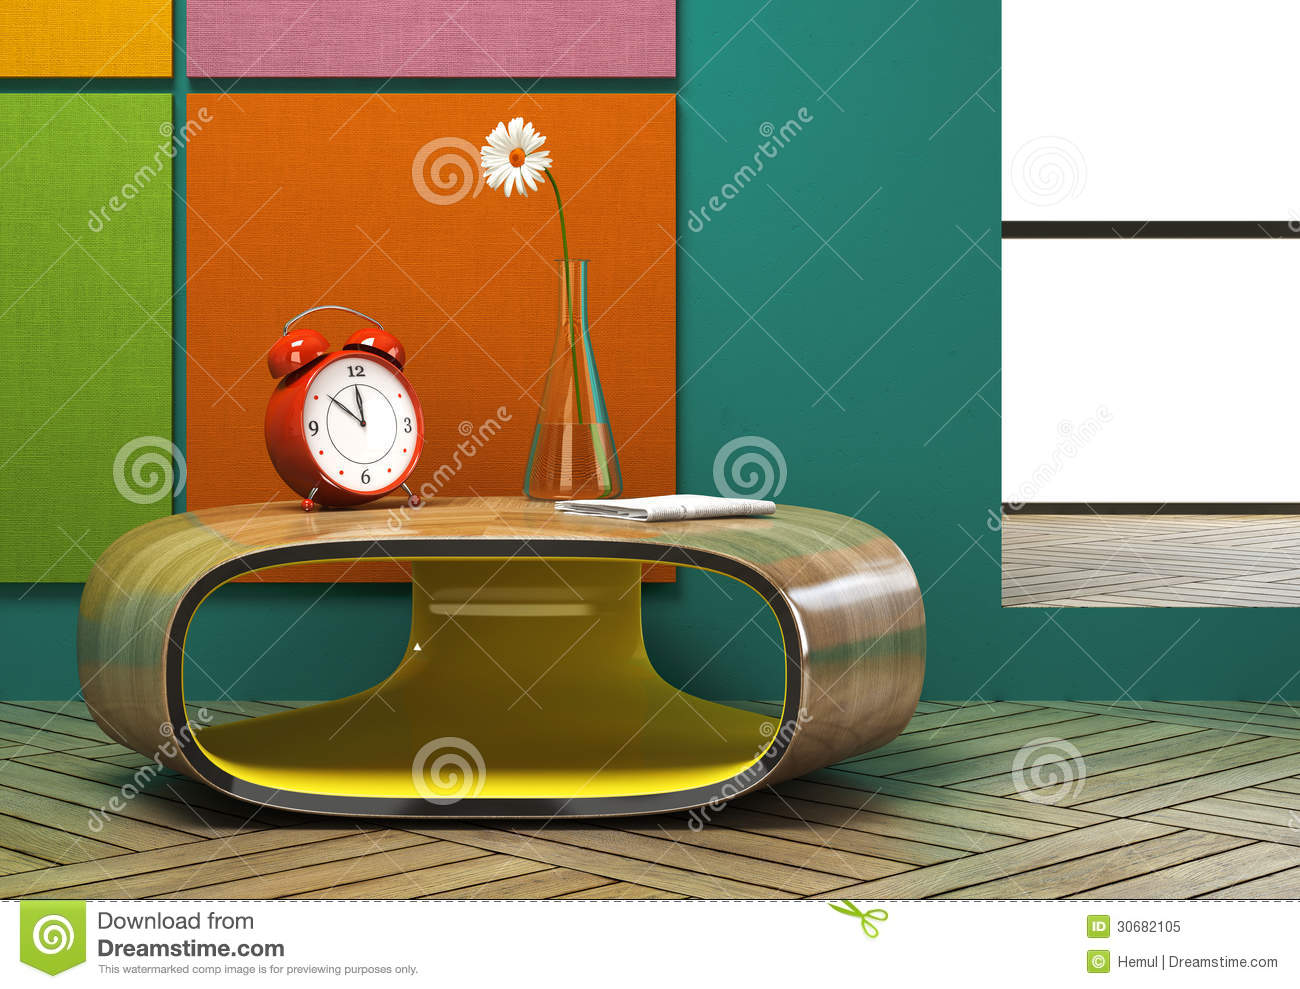 Part of the modern interior with a red alarm clock